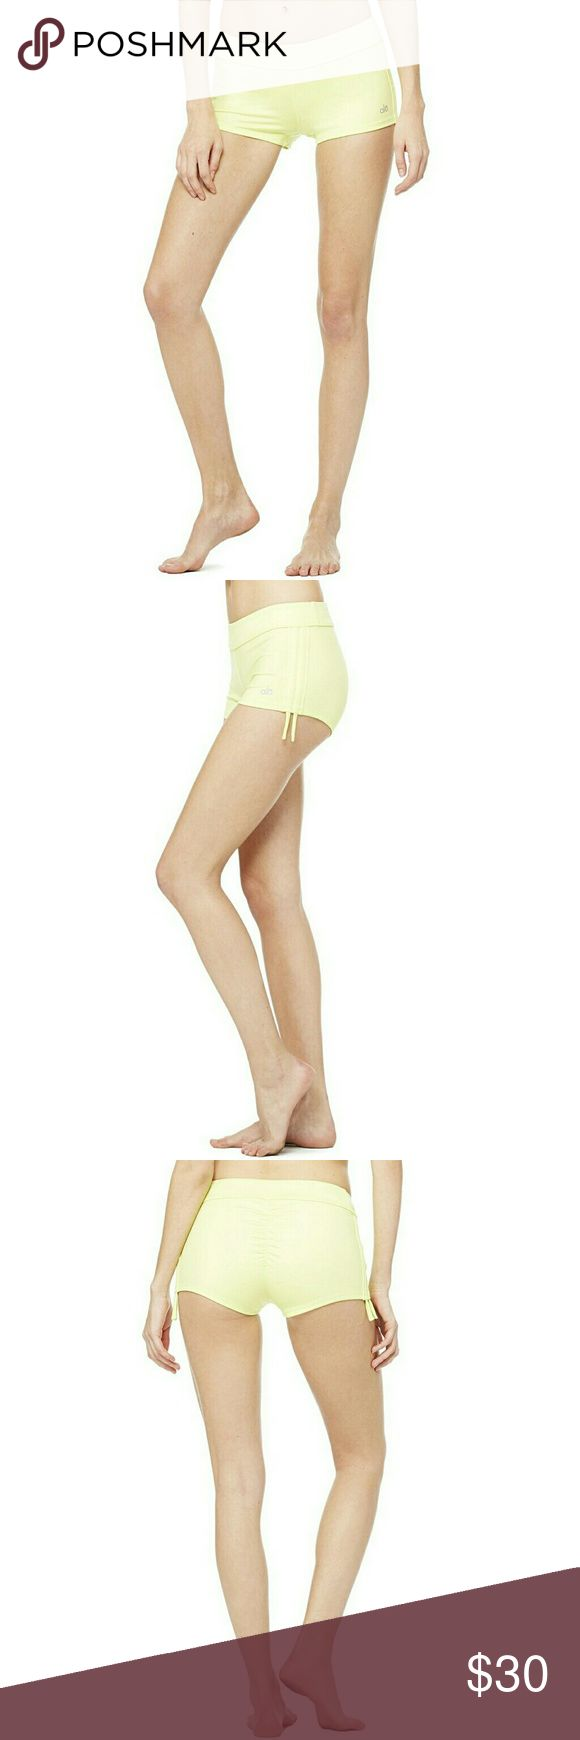 """NWT, ALO YOGA Sweat It Trunk Lime Green Shorts Brand new with tag attached, these Alo Yoga, Sweat It Trunk, Cutie Booty, swimwear inspired, SUP tested, trunks shine in a glossy new performance fabric that flaunts that lunge-sculpted behind. Features side adjuster cords and a 2"""" Inseam. Color is Sunny Lime. Lightweight, Fast-Dry Glossy Performance Fabric. ALO Yoga Shorts"""